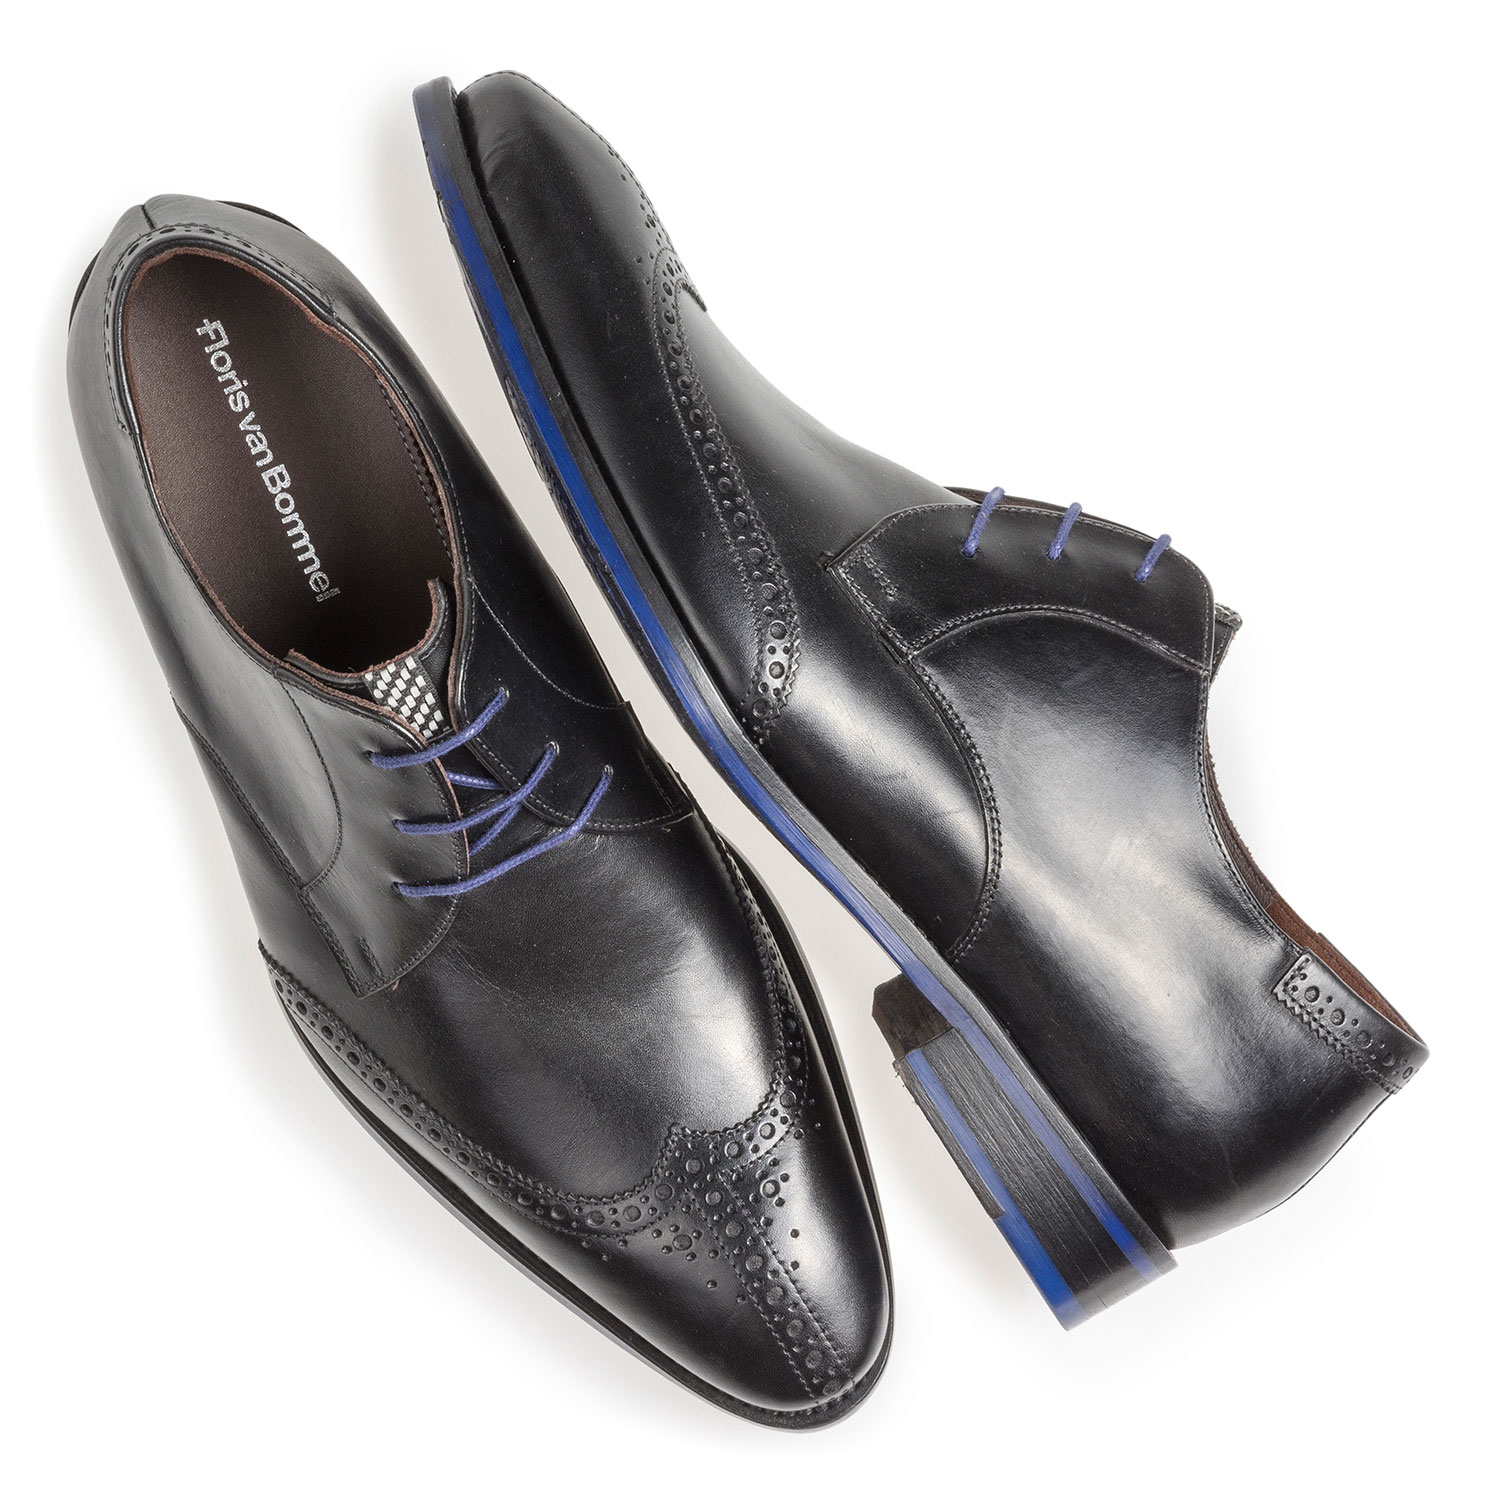 17122/04 - Black calf leather brogue lace shoe